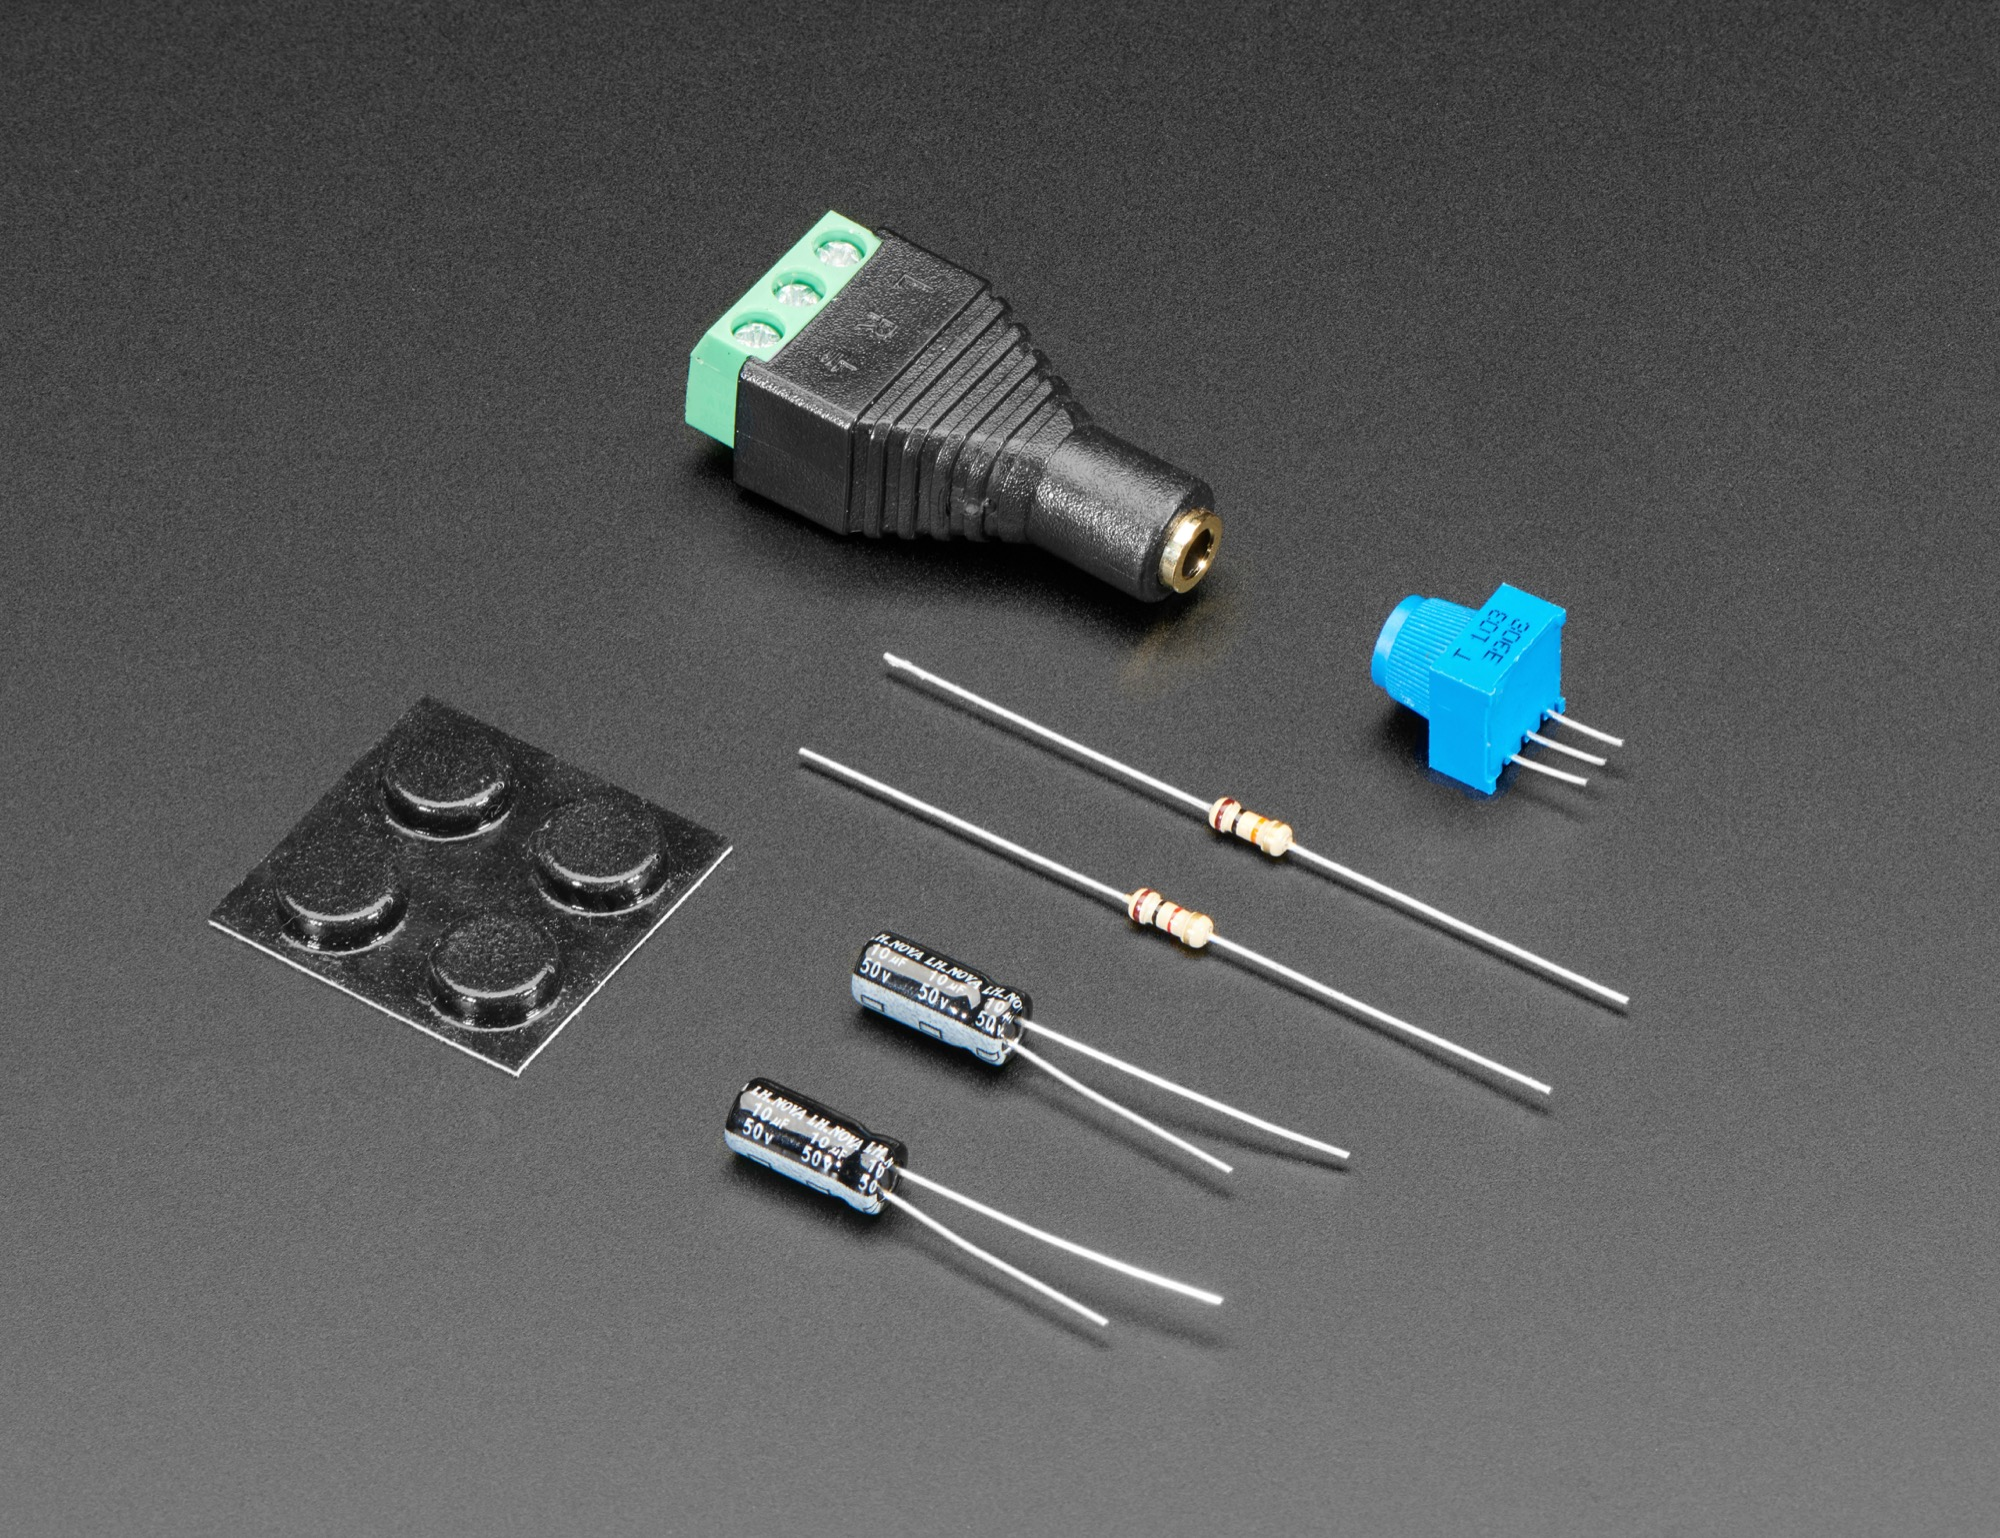 feather_Adabox_10_small_components_copy.jpg